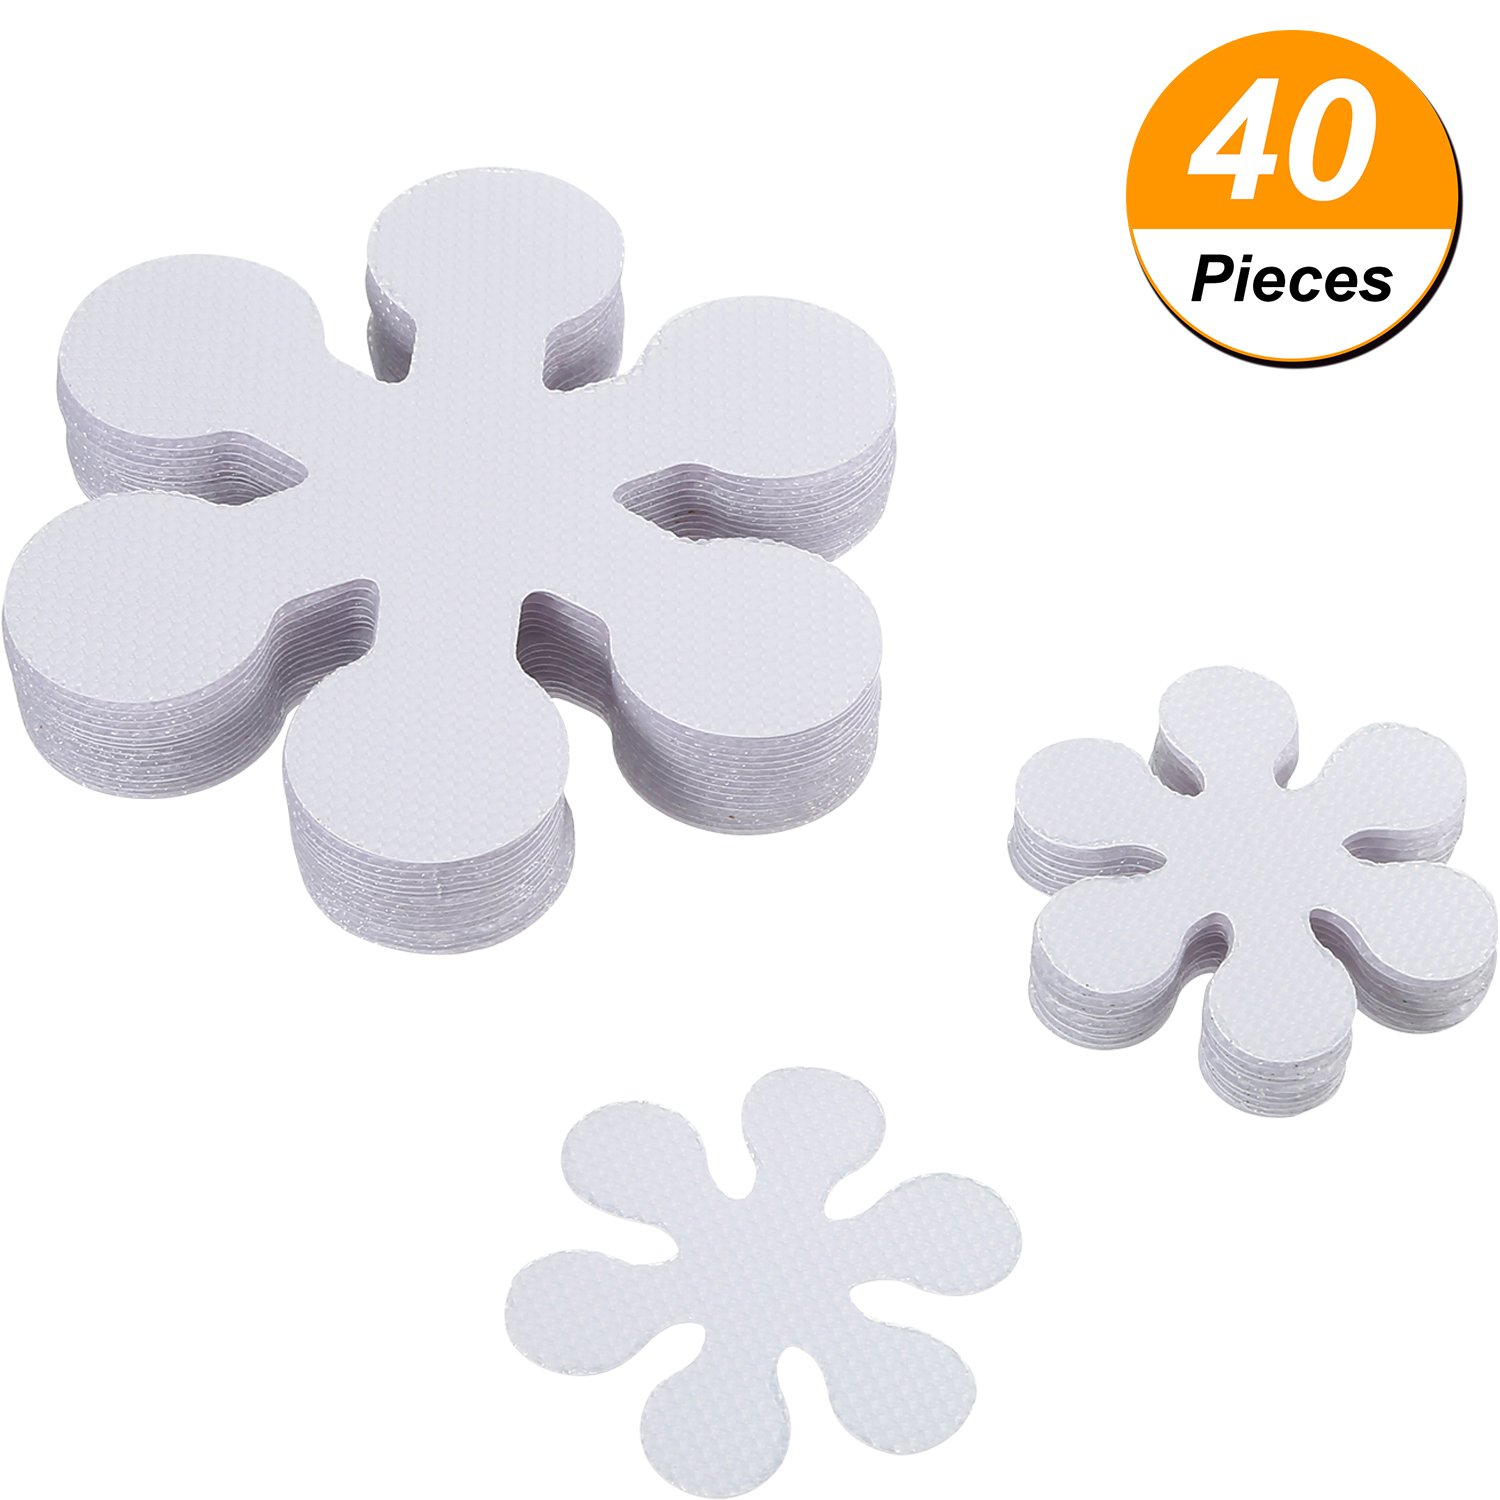 Jovitec 20 Pieces 10 cm/4 Inch Non Slip Bath Stickers Adhesive Safety Shower Treads with 20 Pieces 5 cm/2 Inch Anti Slip Bathtub Decals Stickers, Clear, Flower Shaped (Total 40 Pieces)